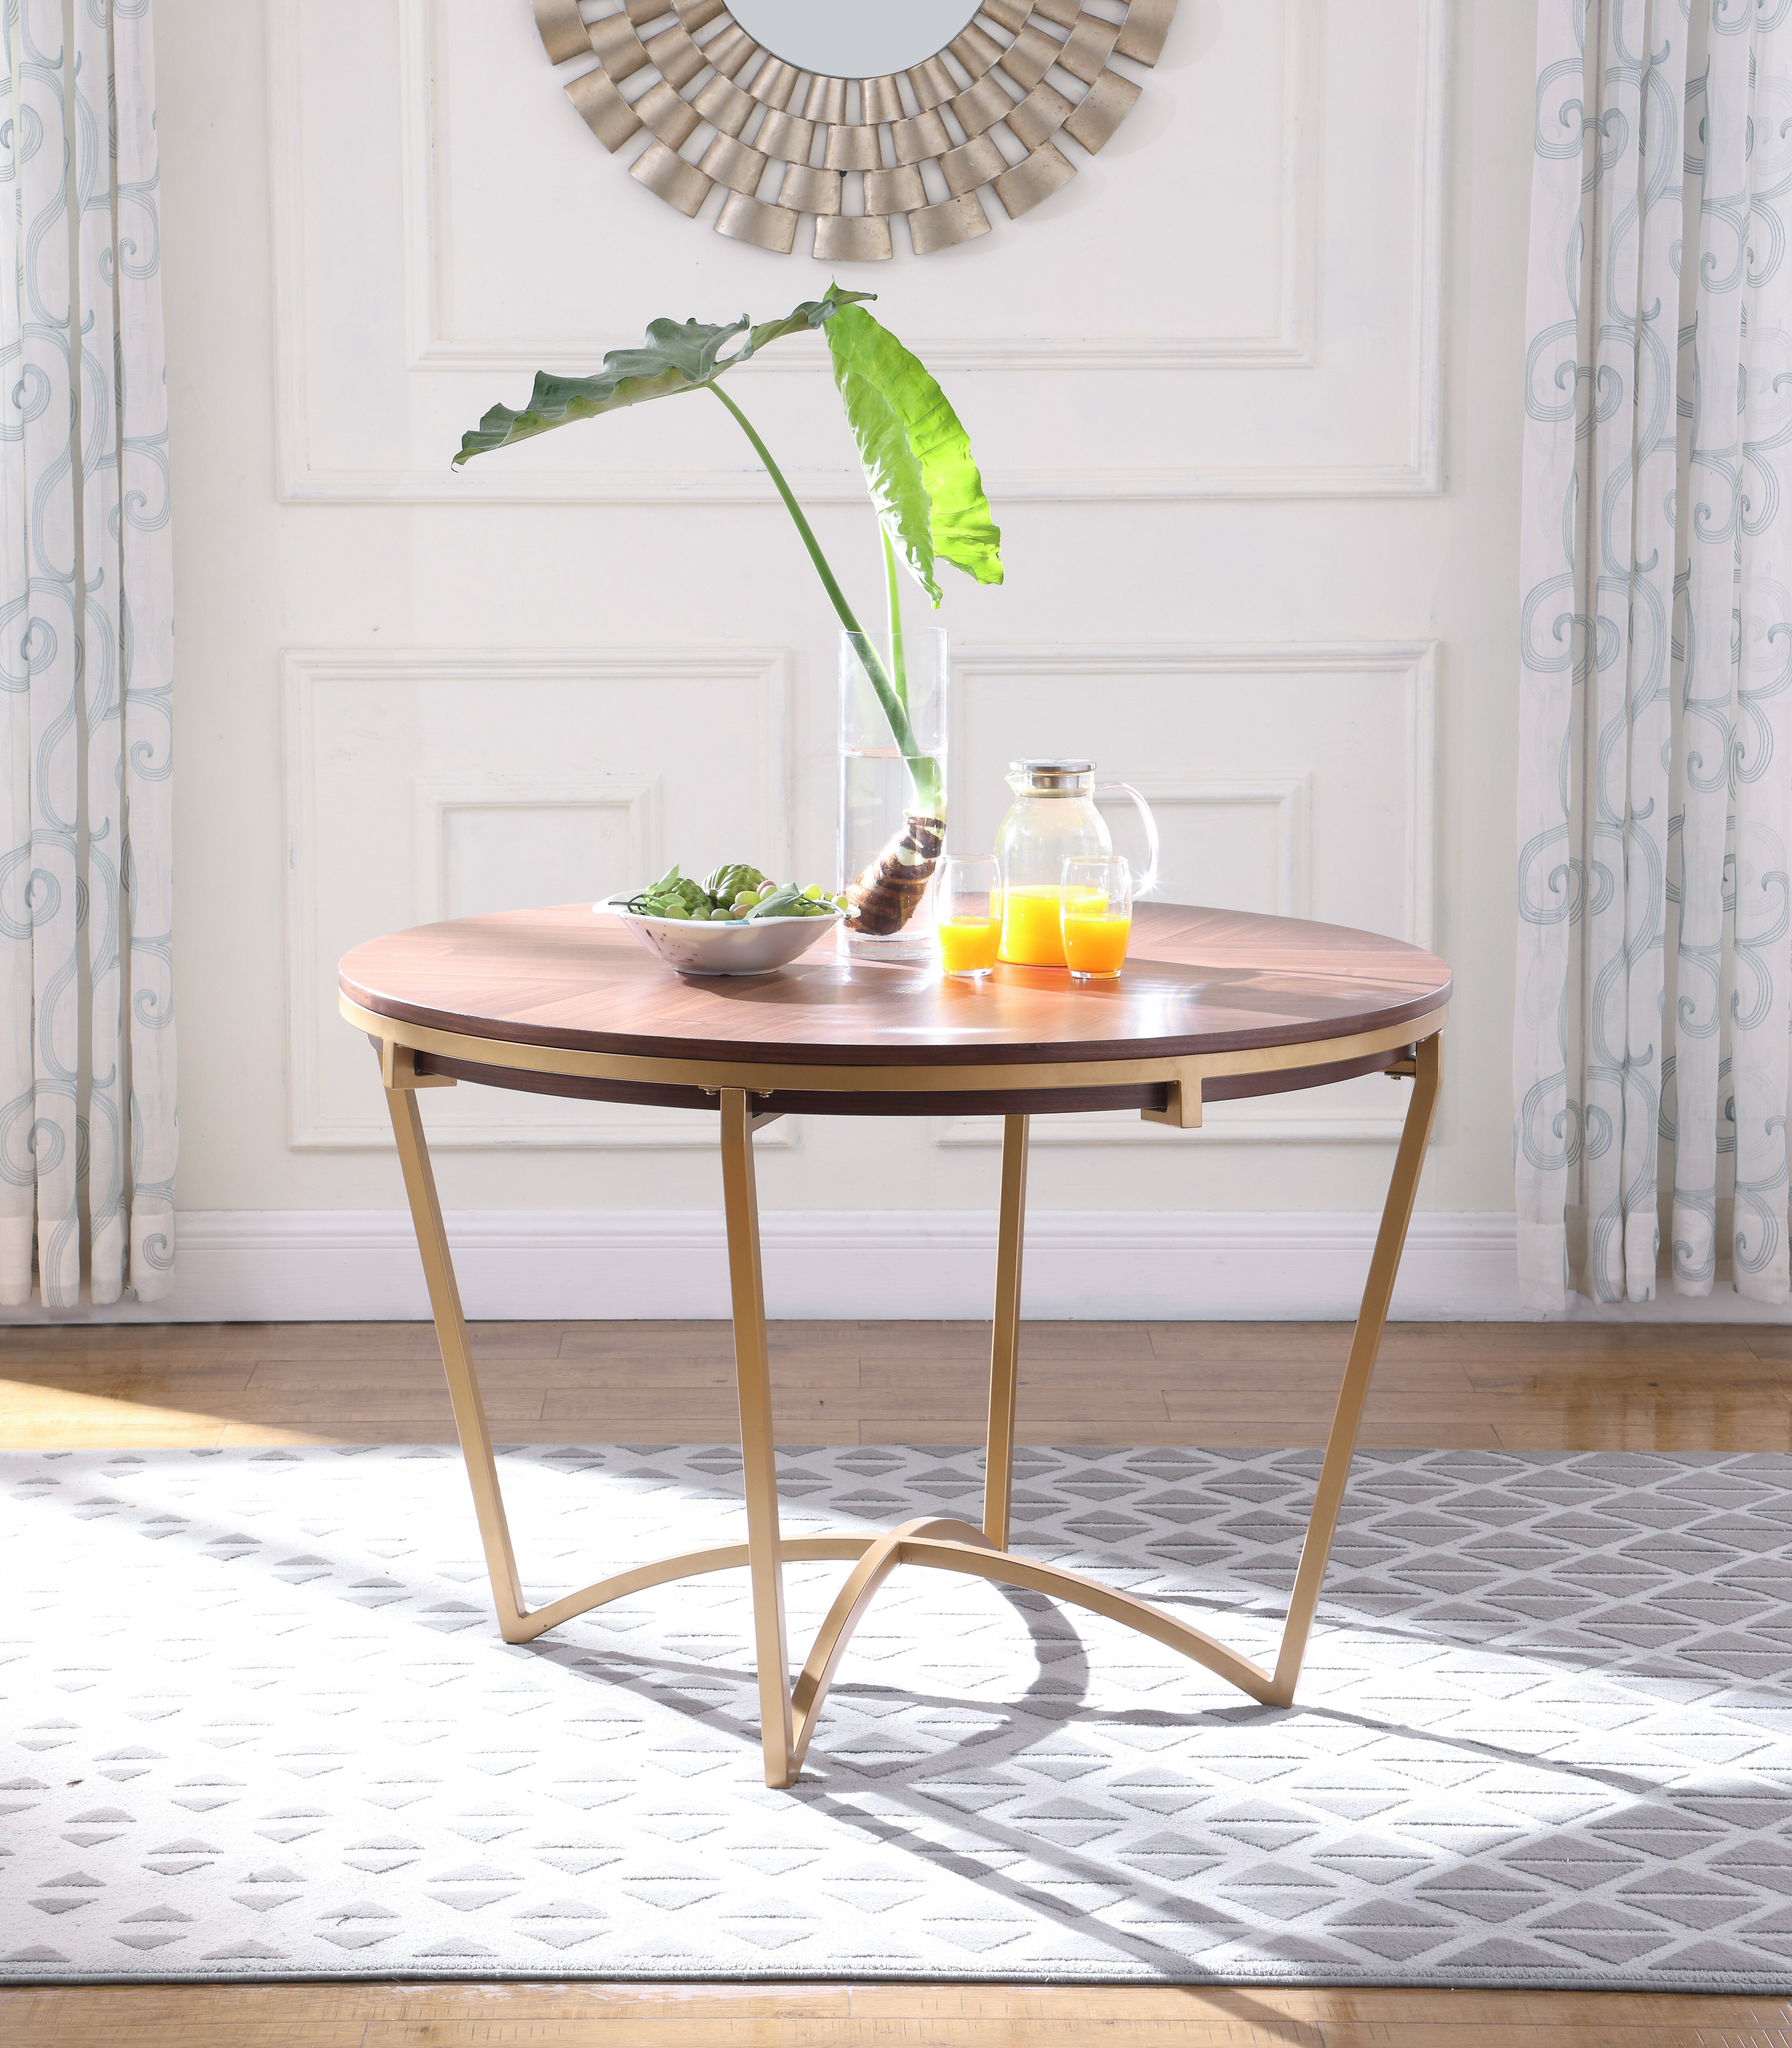 4 Seat Everly Quinn Kitchen Dining Tables You Ll Love In 2021 Wayfair